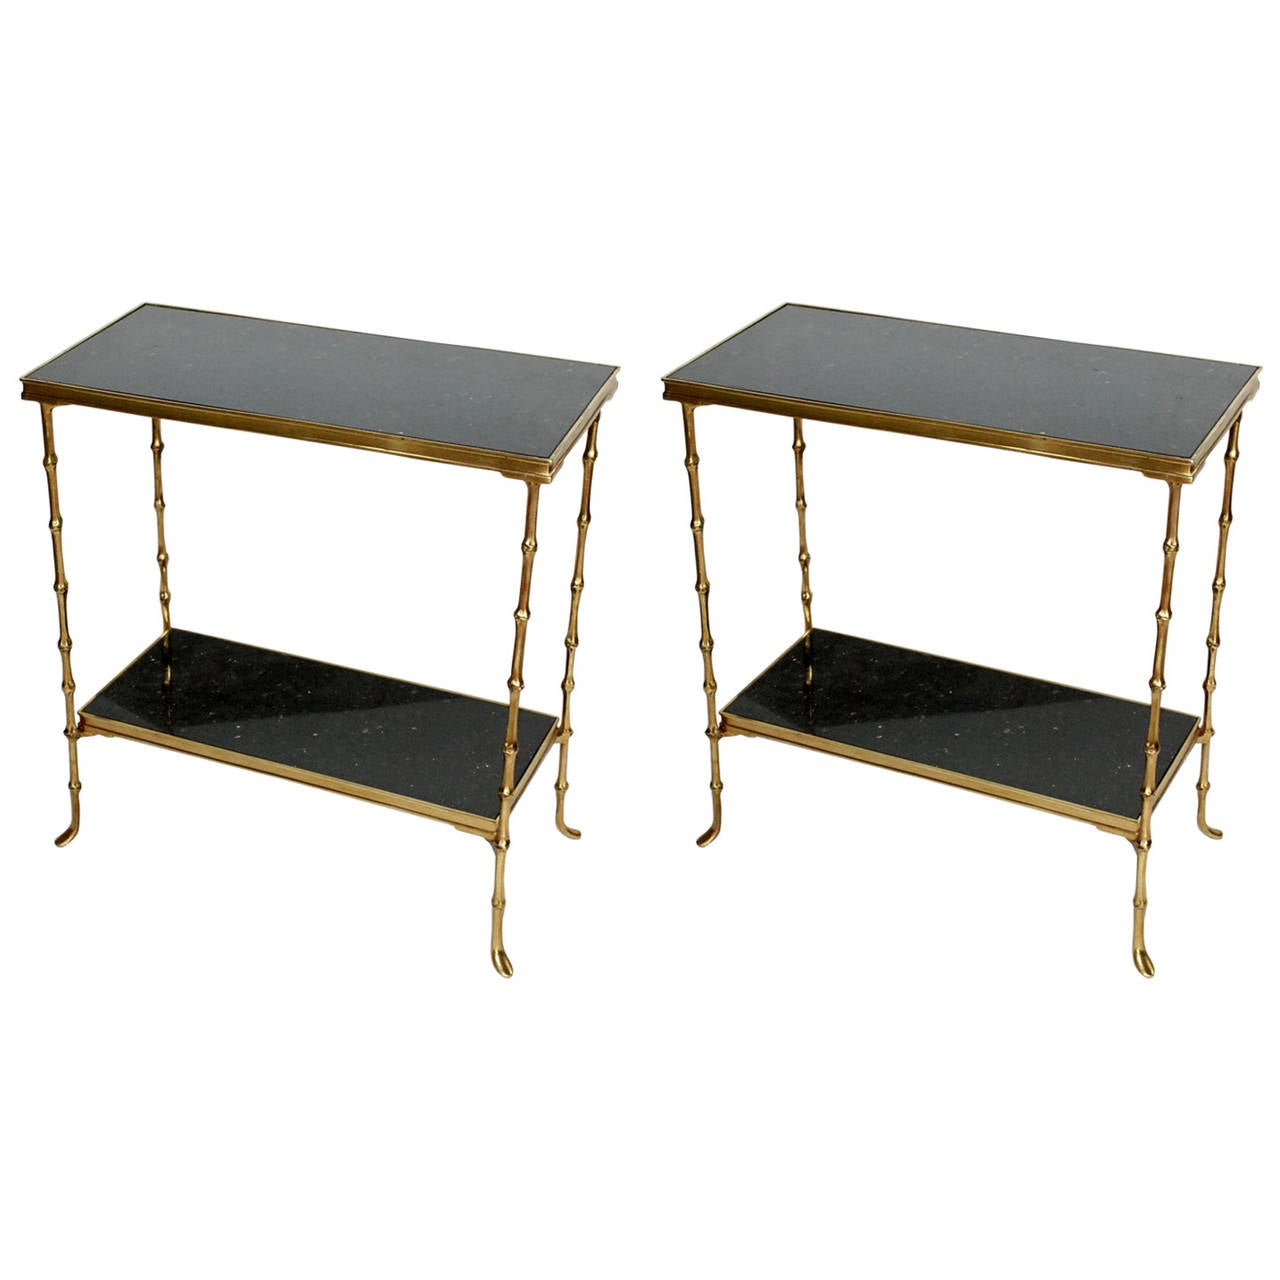 Pair of maison bagu s side tables at 1stdibs - Archives departementales 33 tables decennales ...